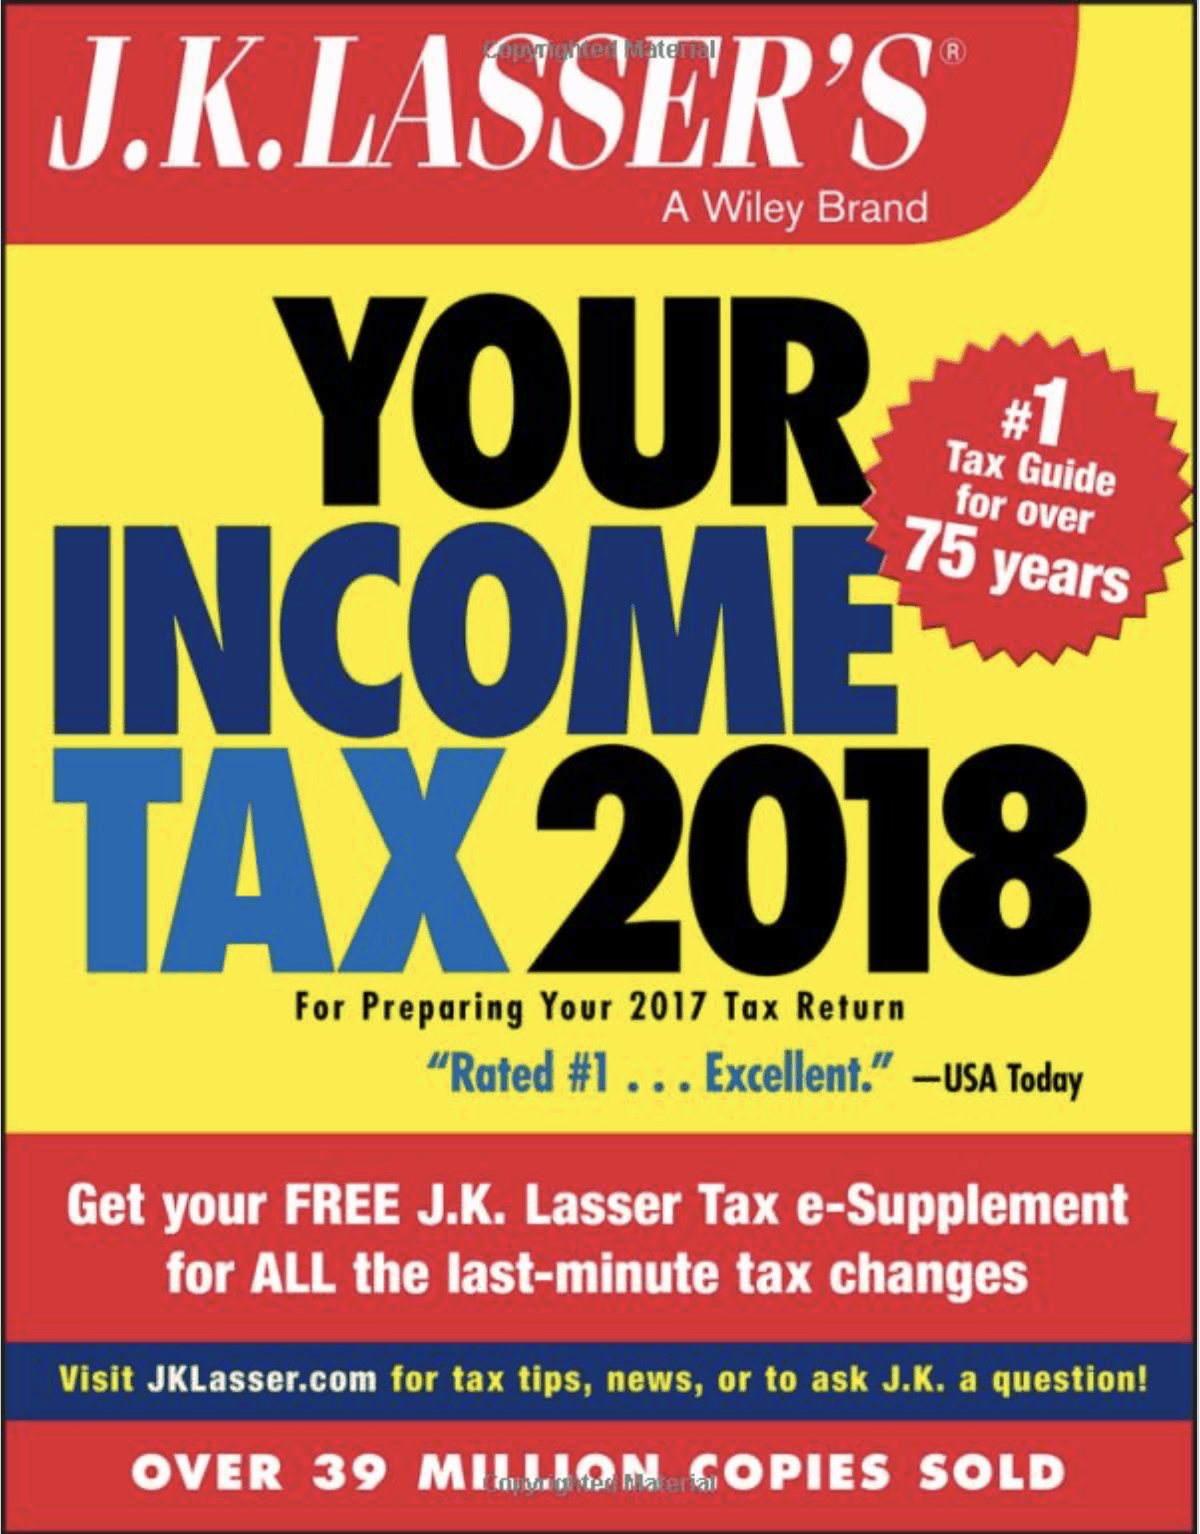 J.K.Lassers approved Income Tax Planning